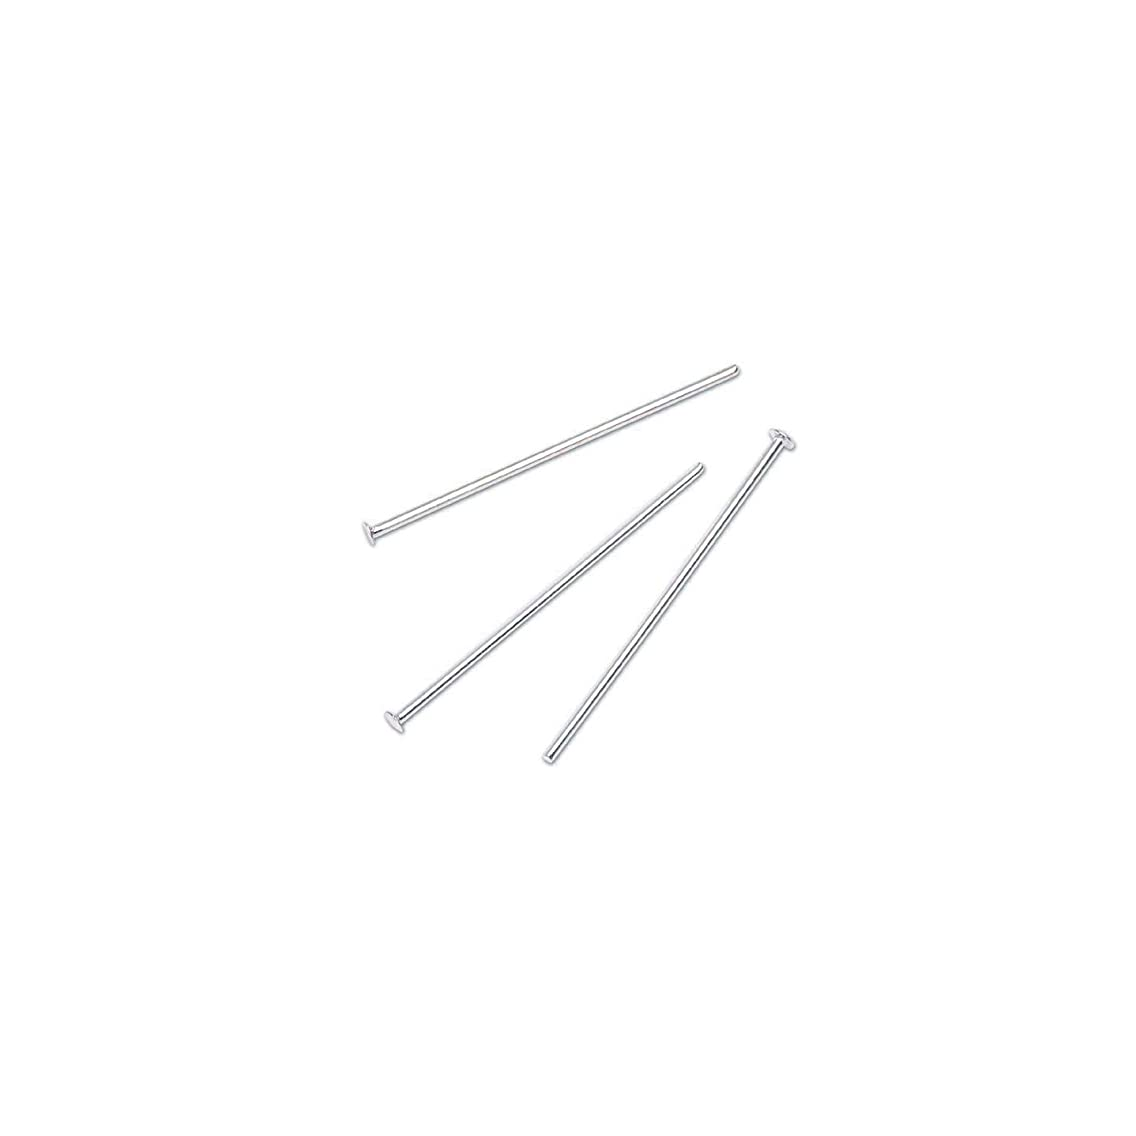 Bulk Buy: Darice DIY Crafts Head Pins Sterling Silver Plated 1 inch 180 pieces (3-Pack) 1990-35